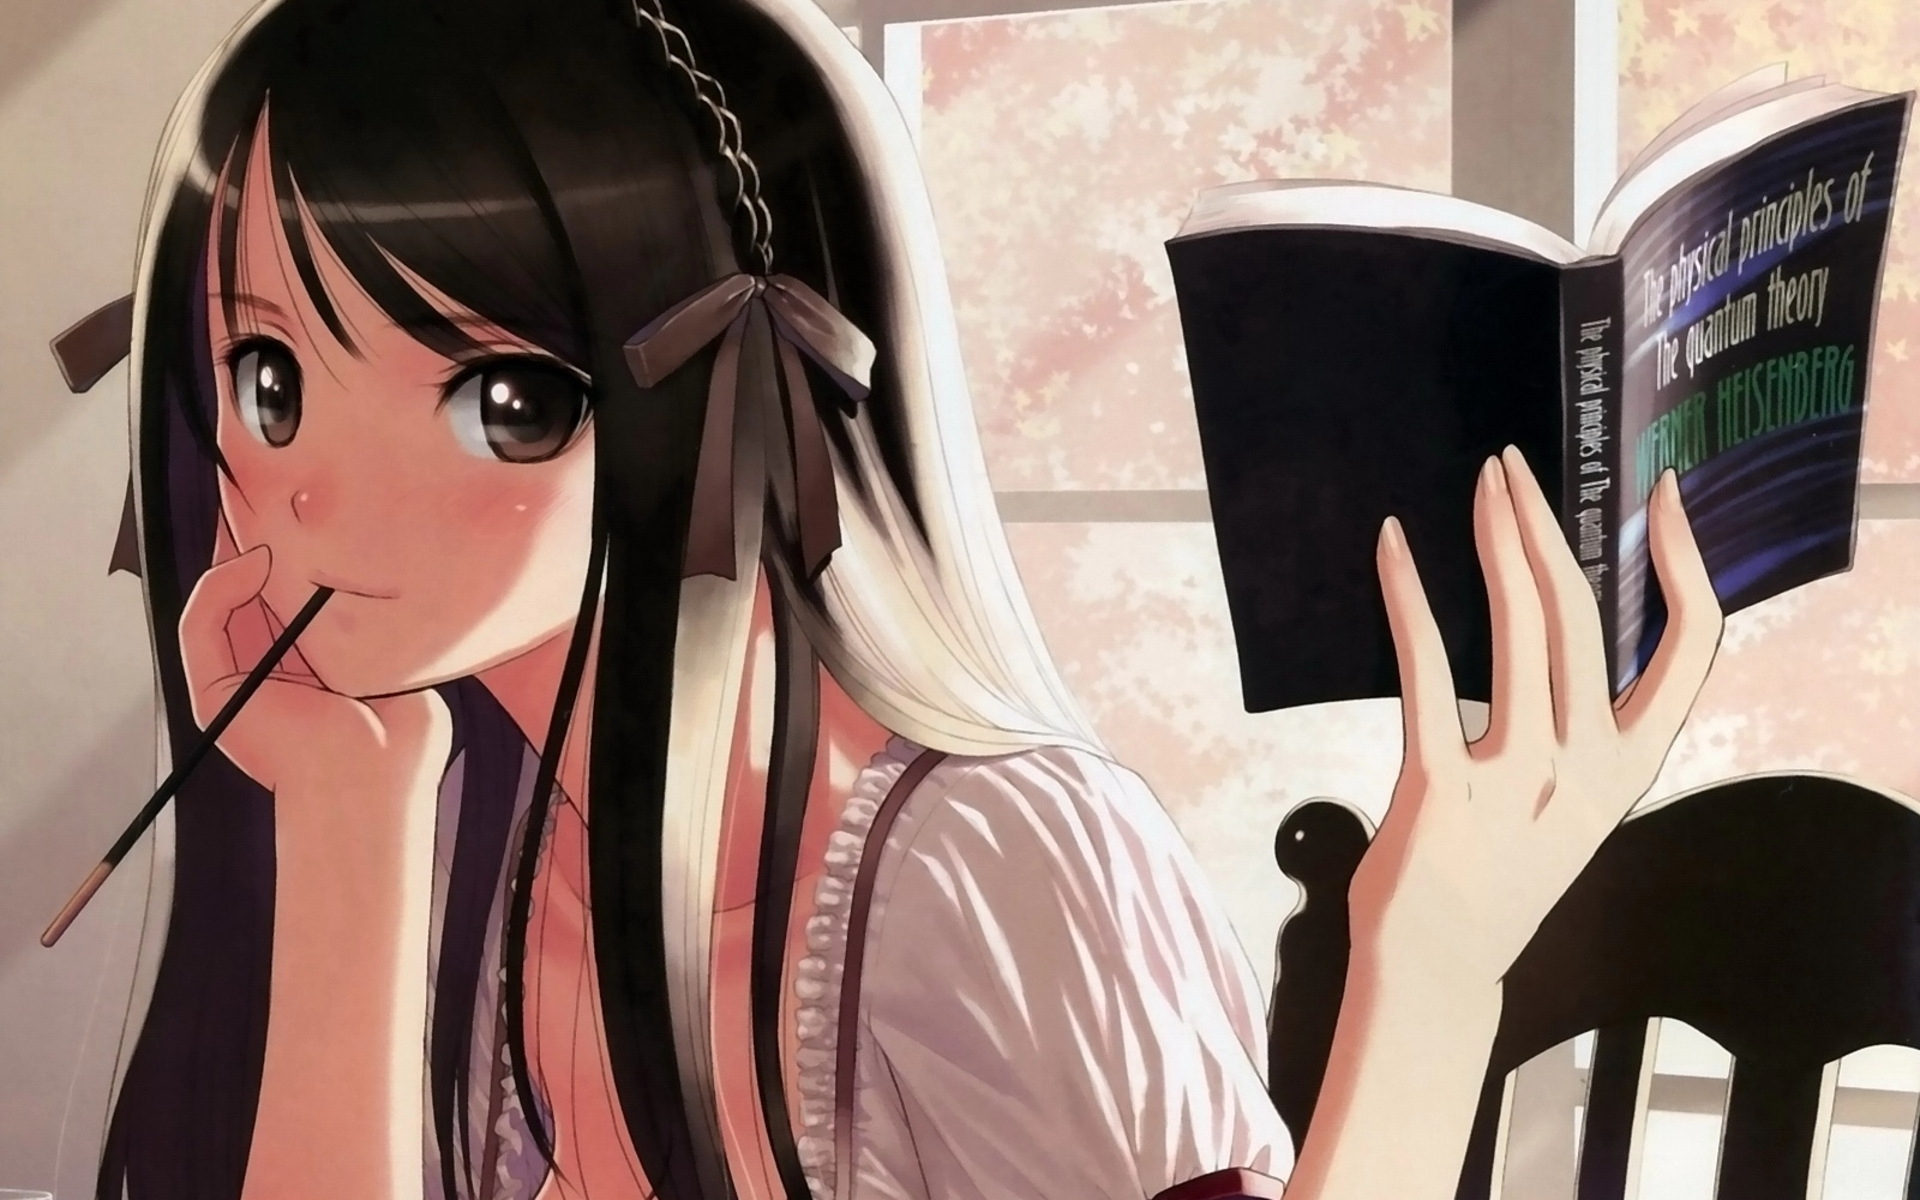 Download Anime Girl Studying Wallpaper 1920x1200 | Full HD Wallpapers